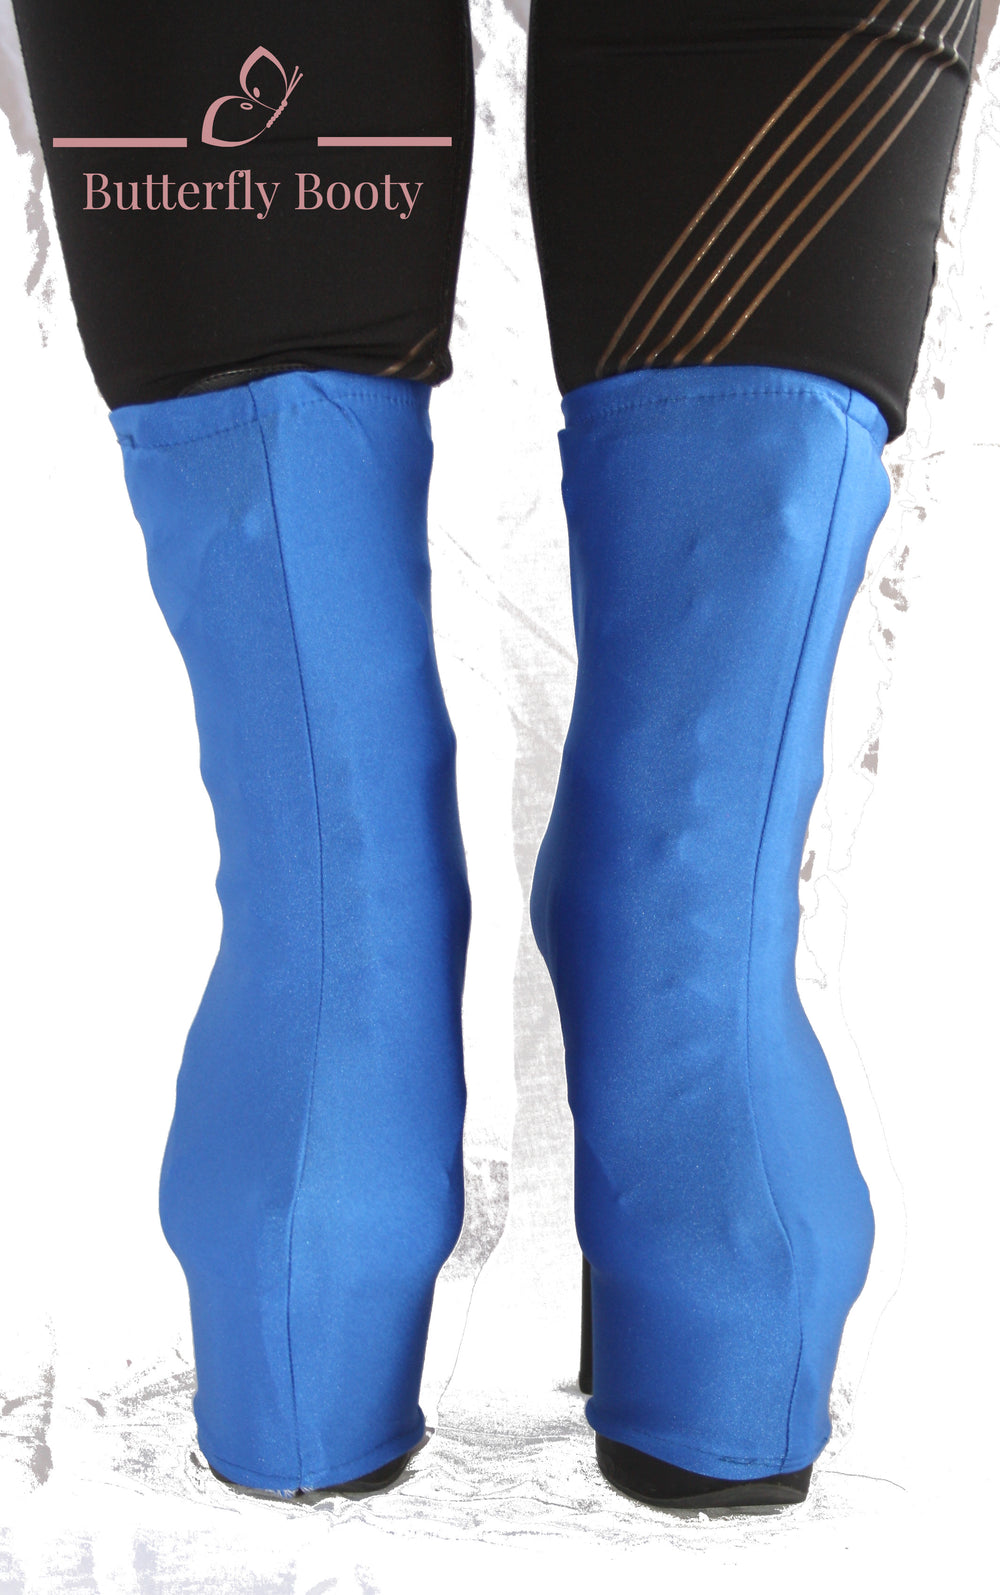 BUTTERFLY BOOTY Boot Covers - Blue